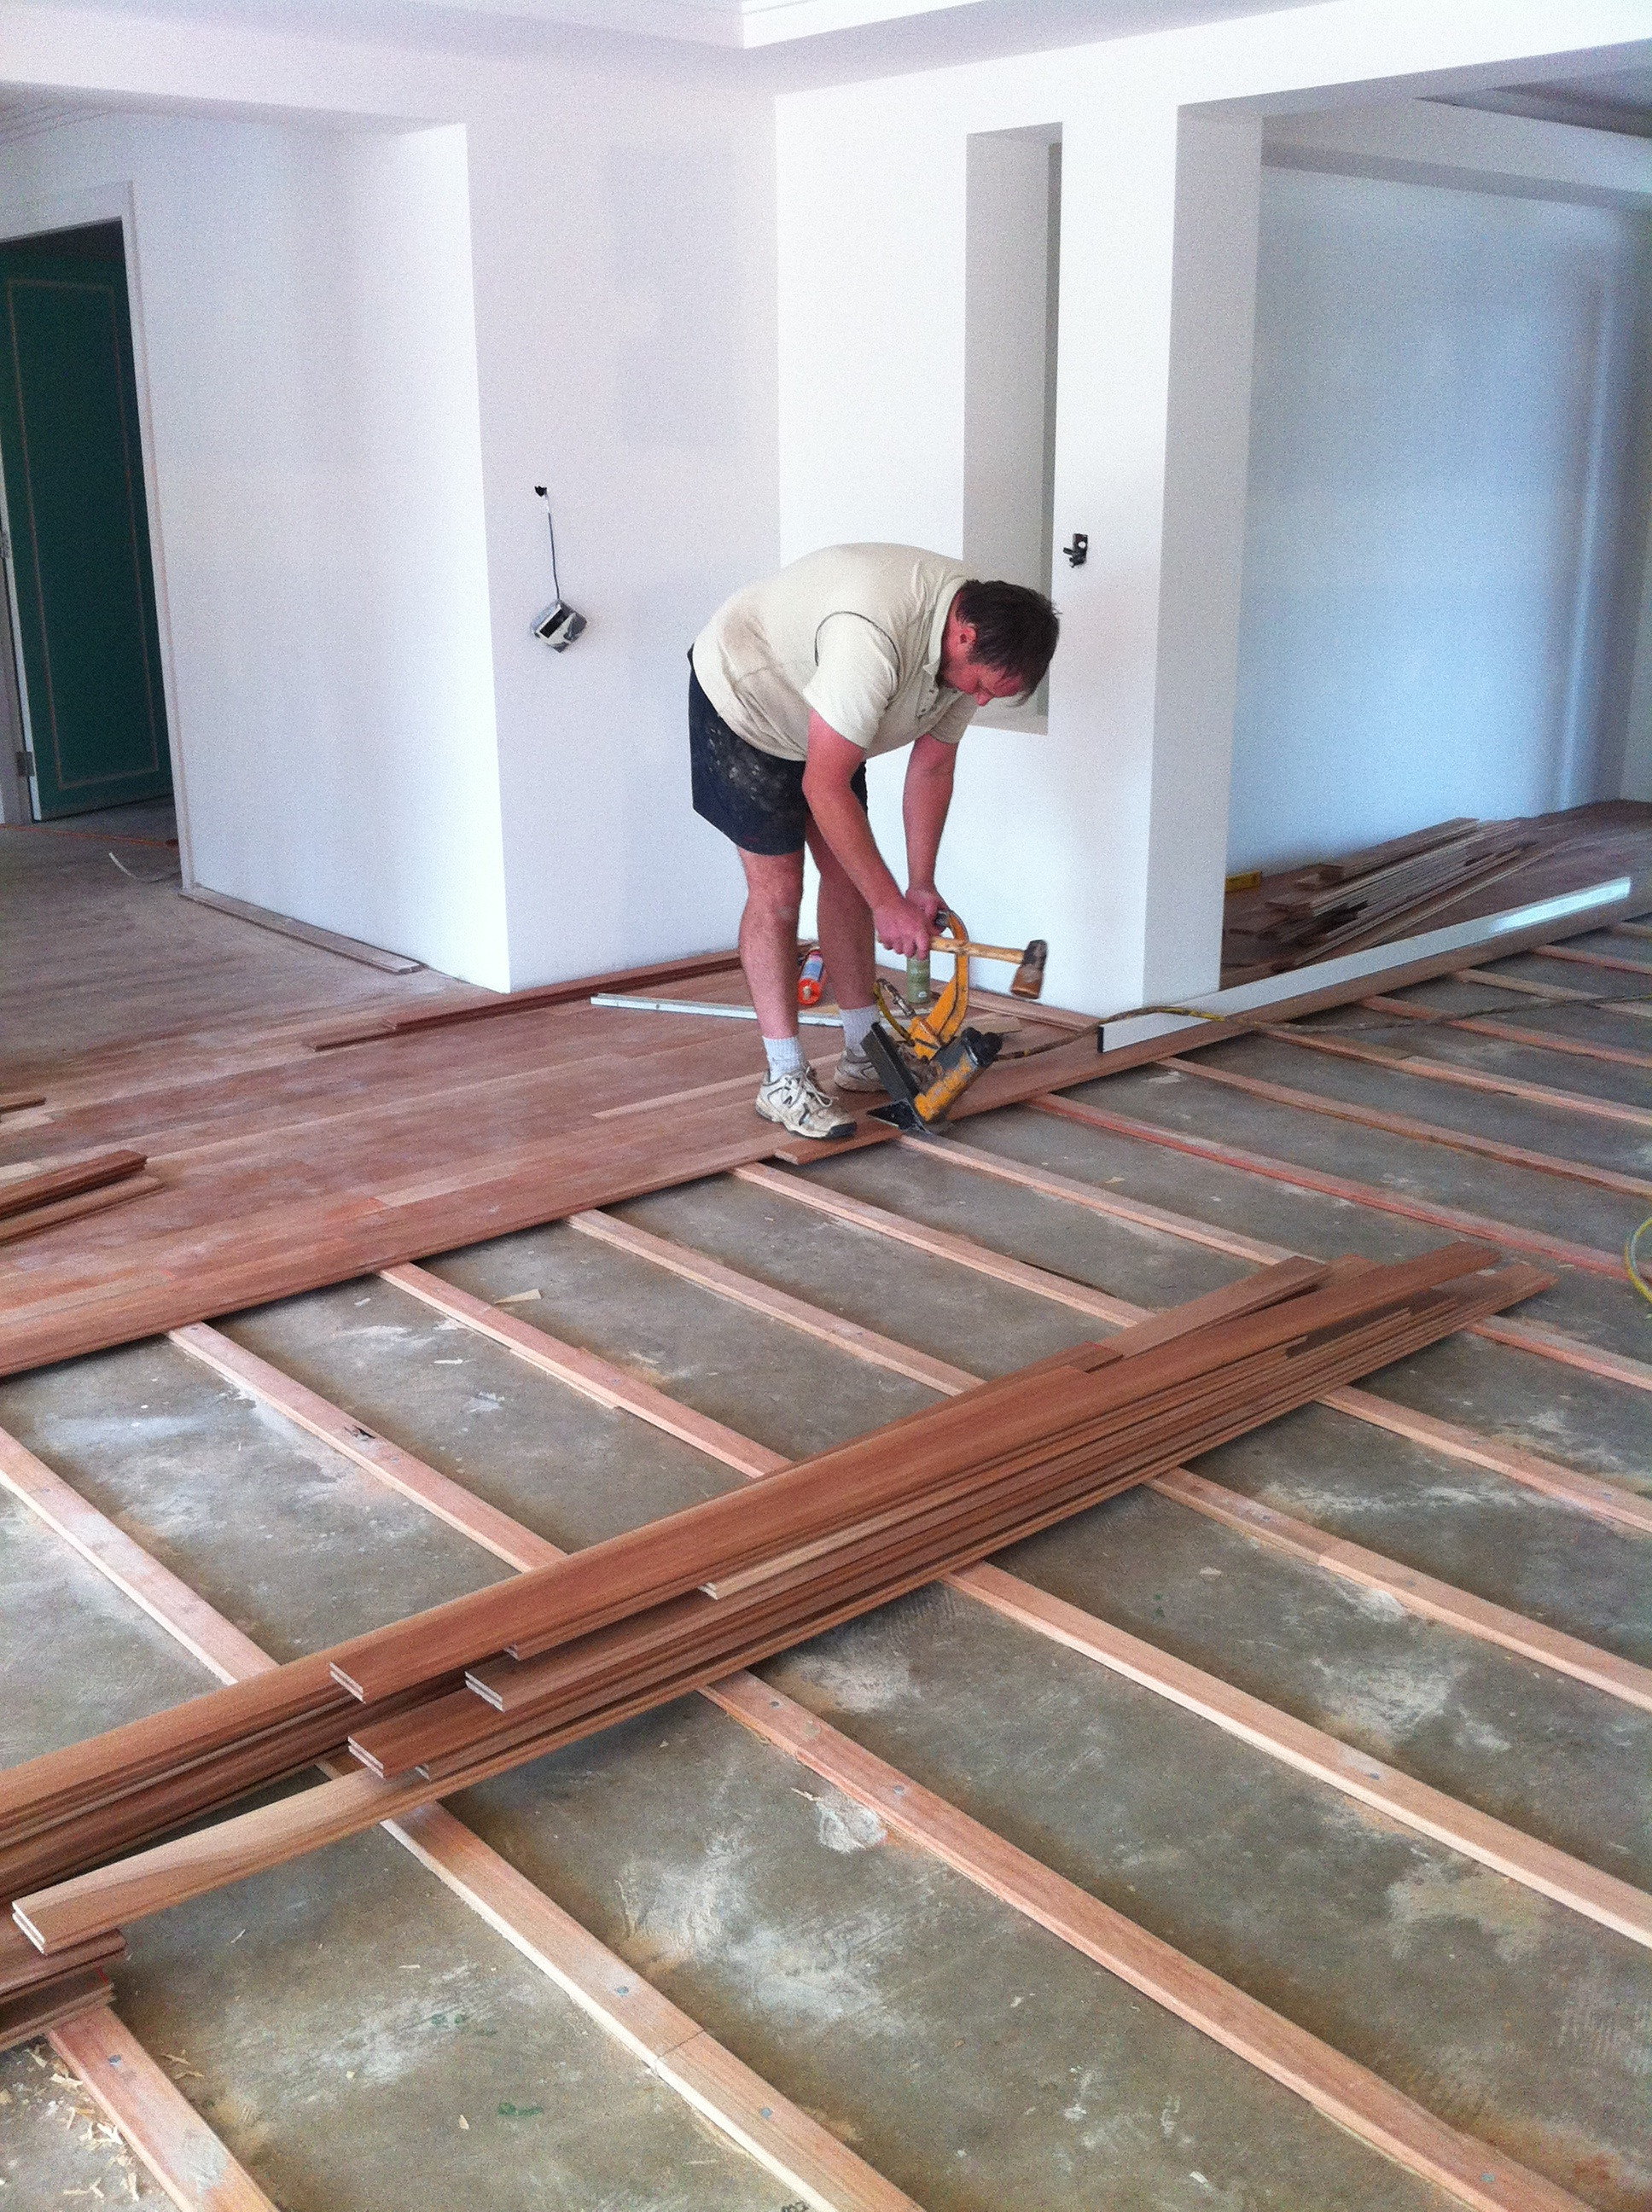 Installing Hardwood Floors On Concrete Slab Of Fresh Hardwood Flooring Dimensions Address Db Inside How to Lay Wooden Floorboards Timber Flooring Installation Floors Austral On Floor Laminate Flooring Dimensions Fresh